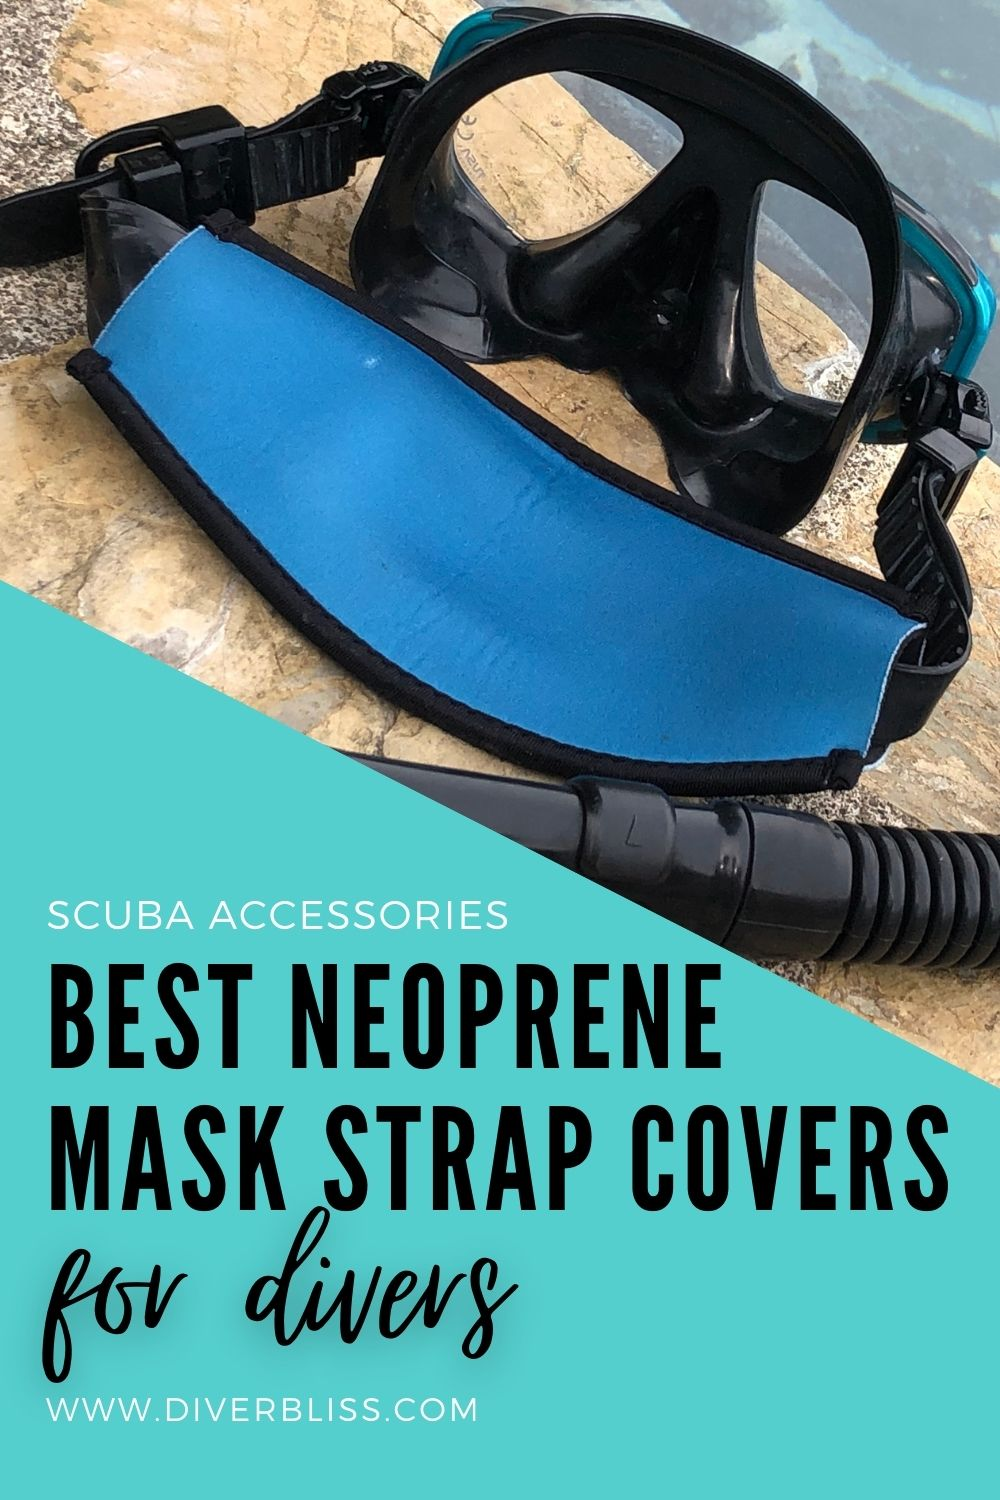 Best neoprene mask strap covers for divers